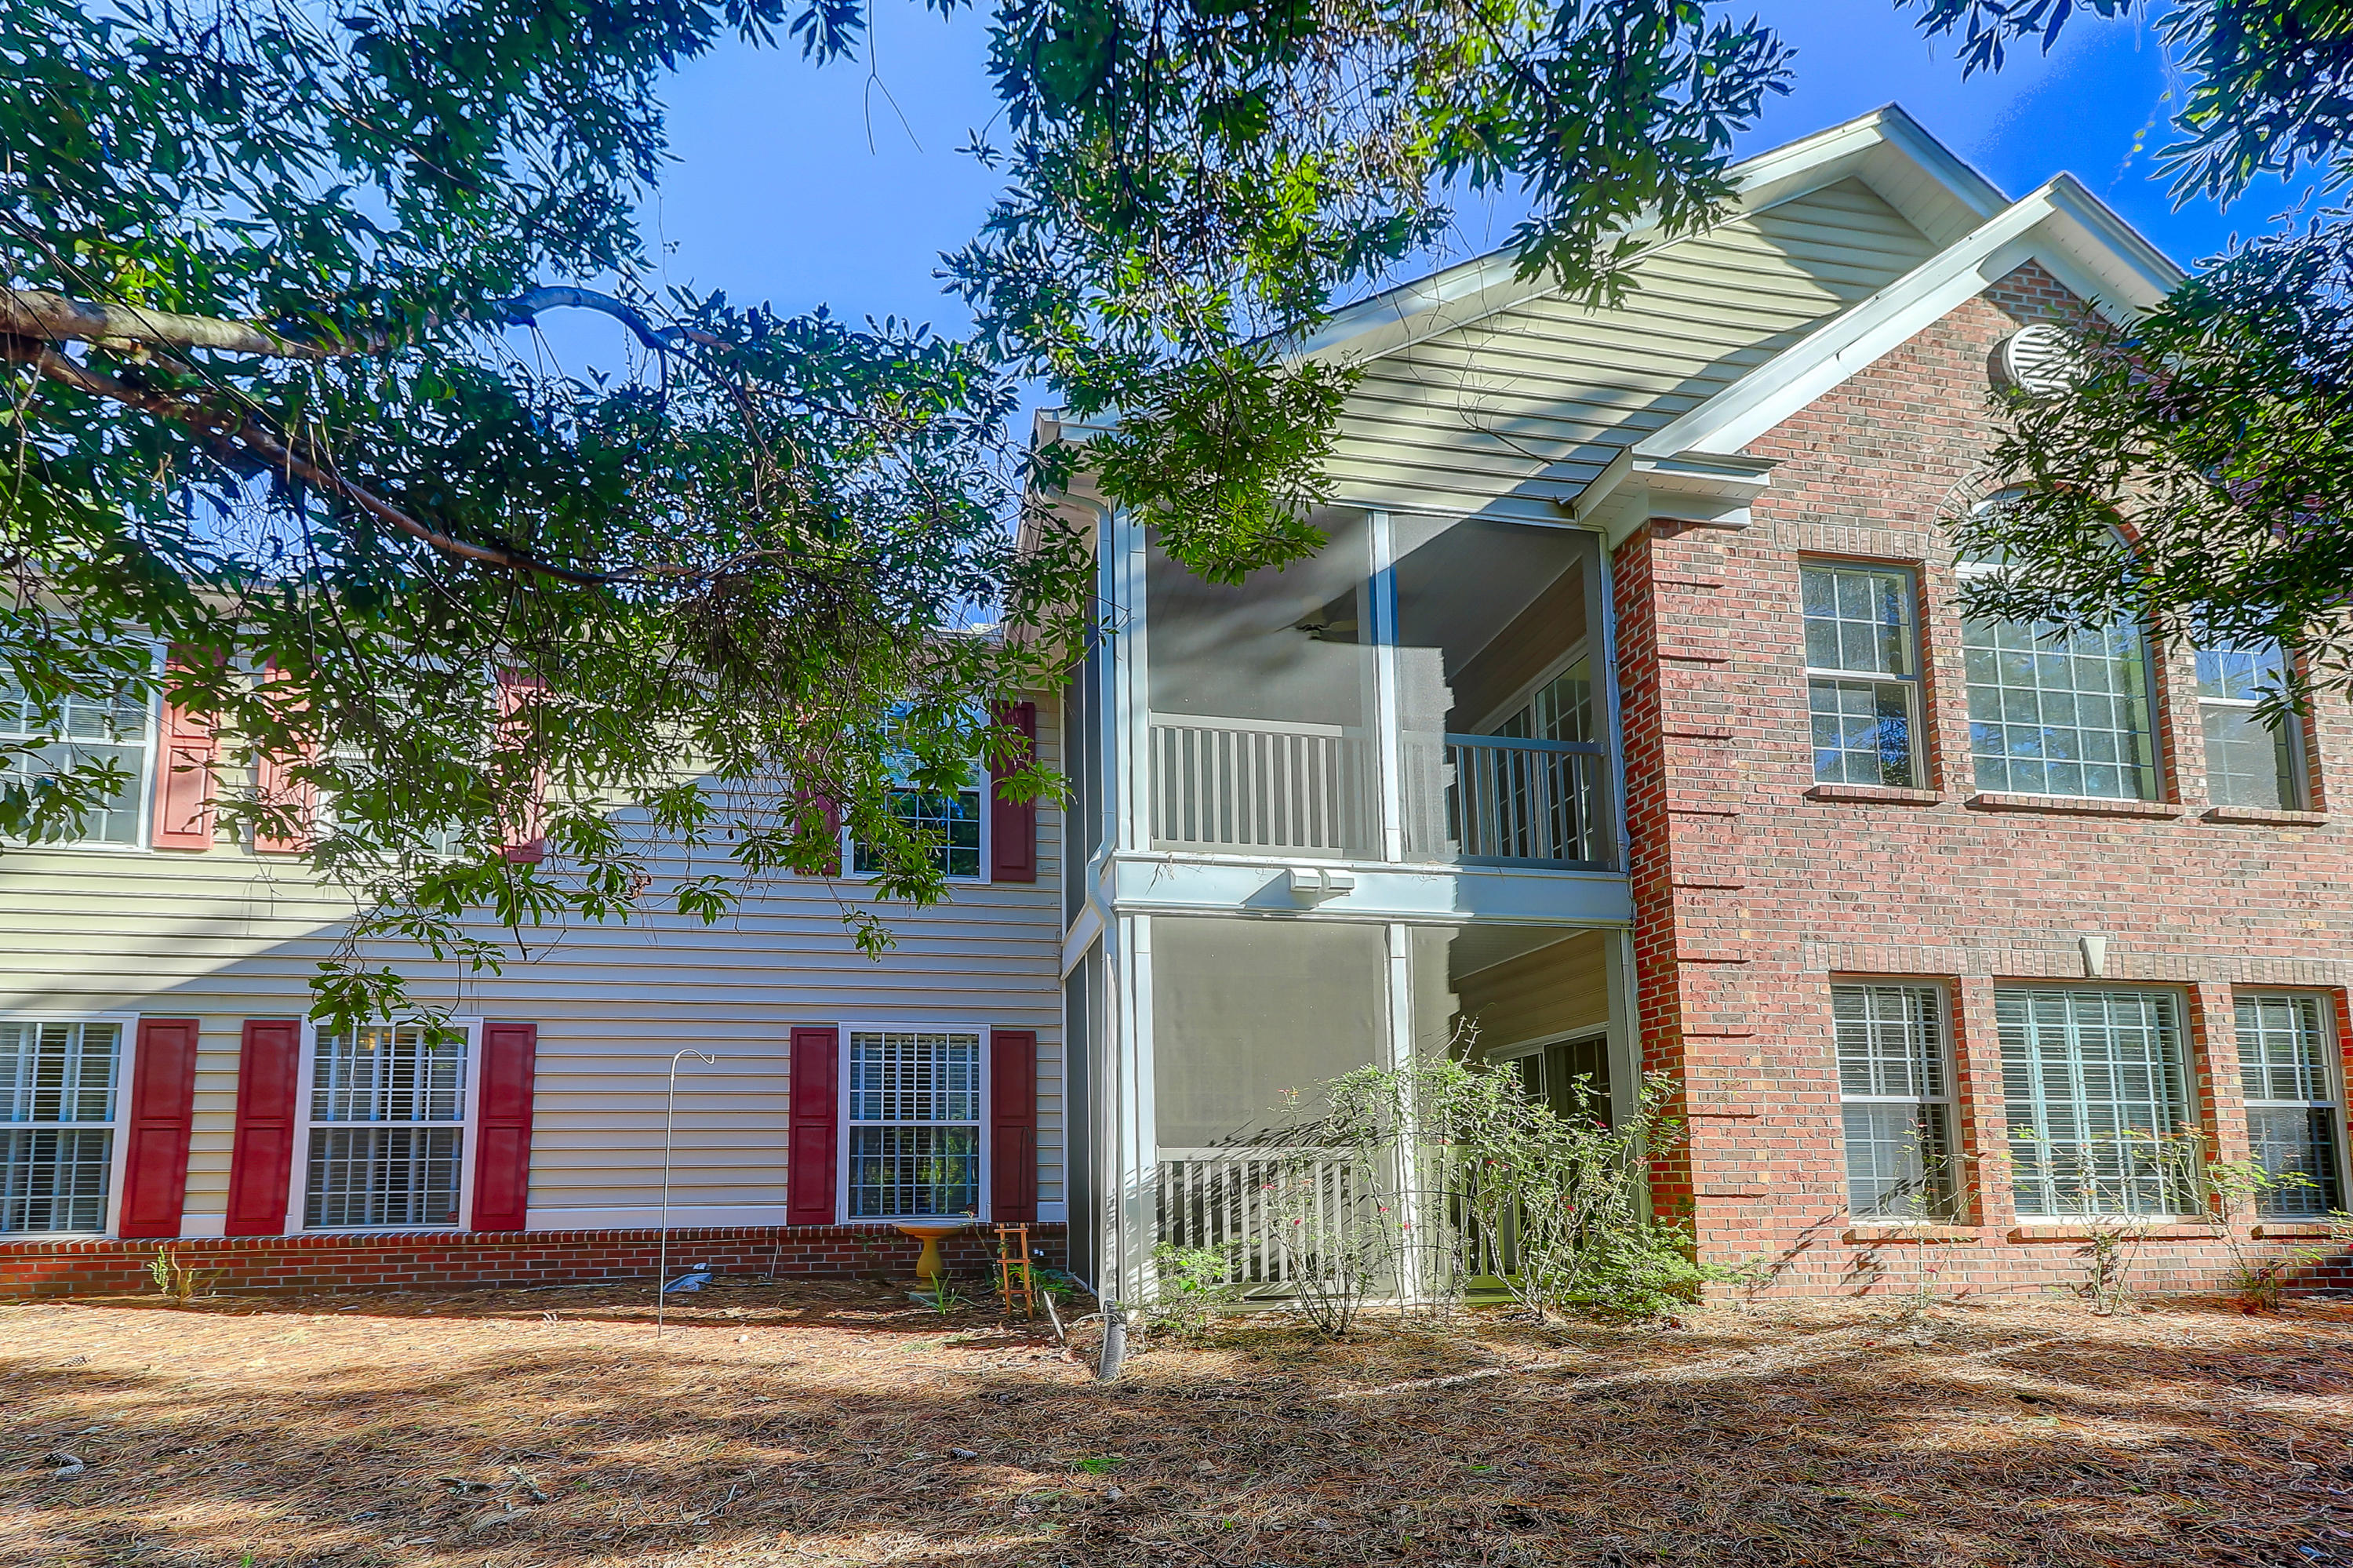 Dunes West Homes For Sale - 1518 Deene Park, Mount Pleasant, SC - 0